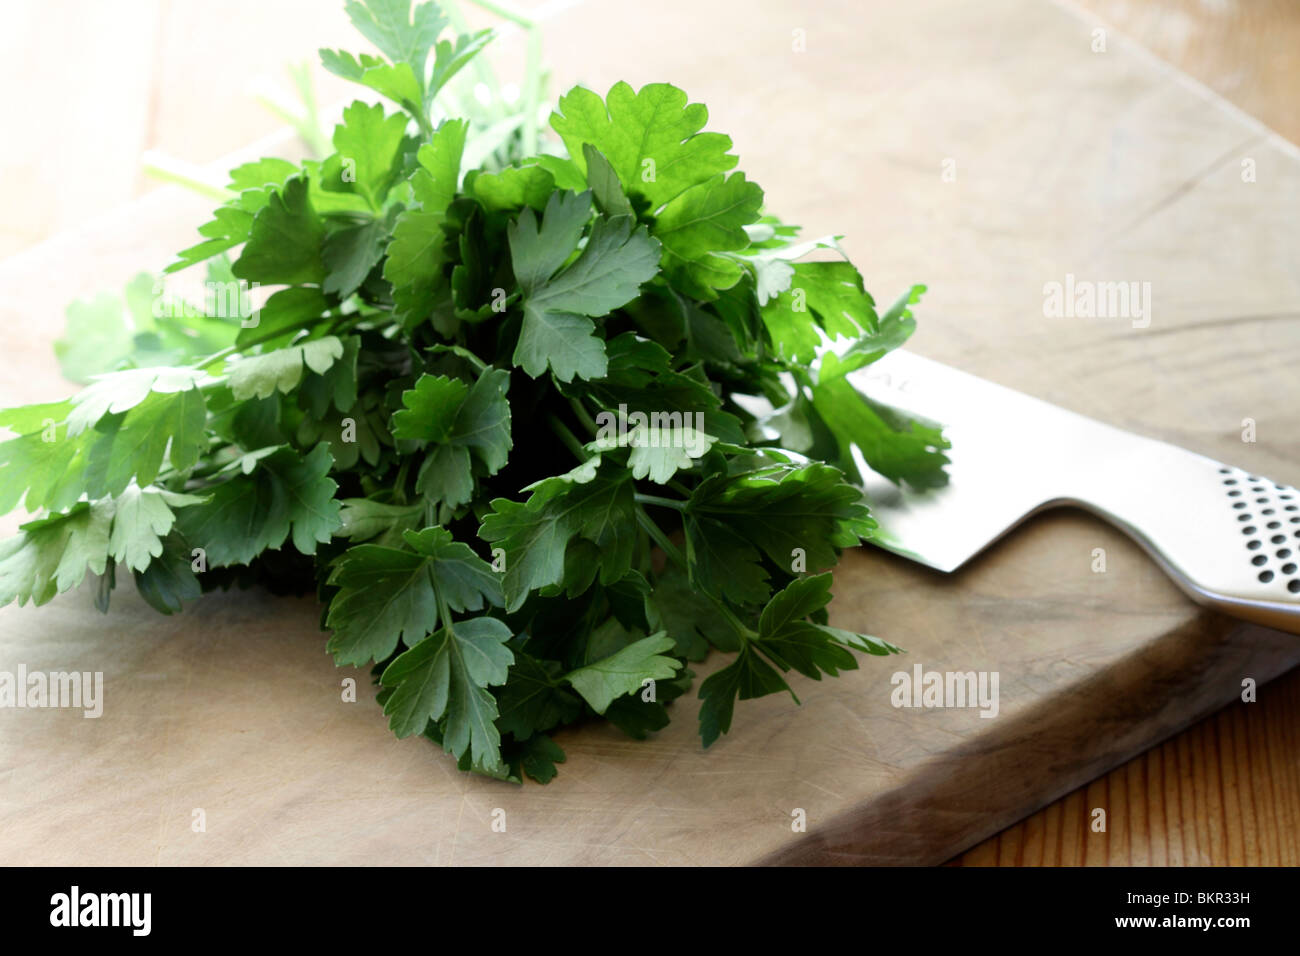 Parsley on chopping board - Stock Image